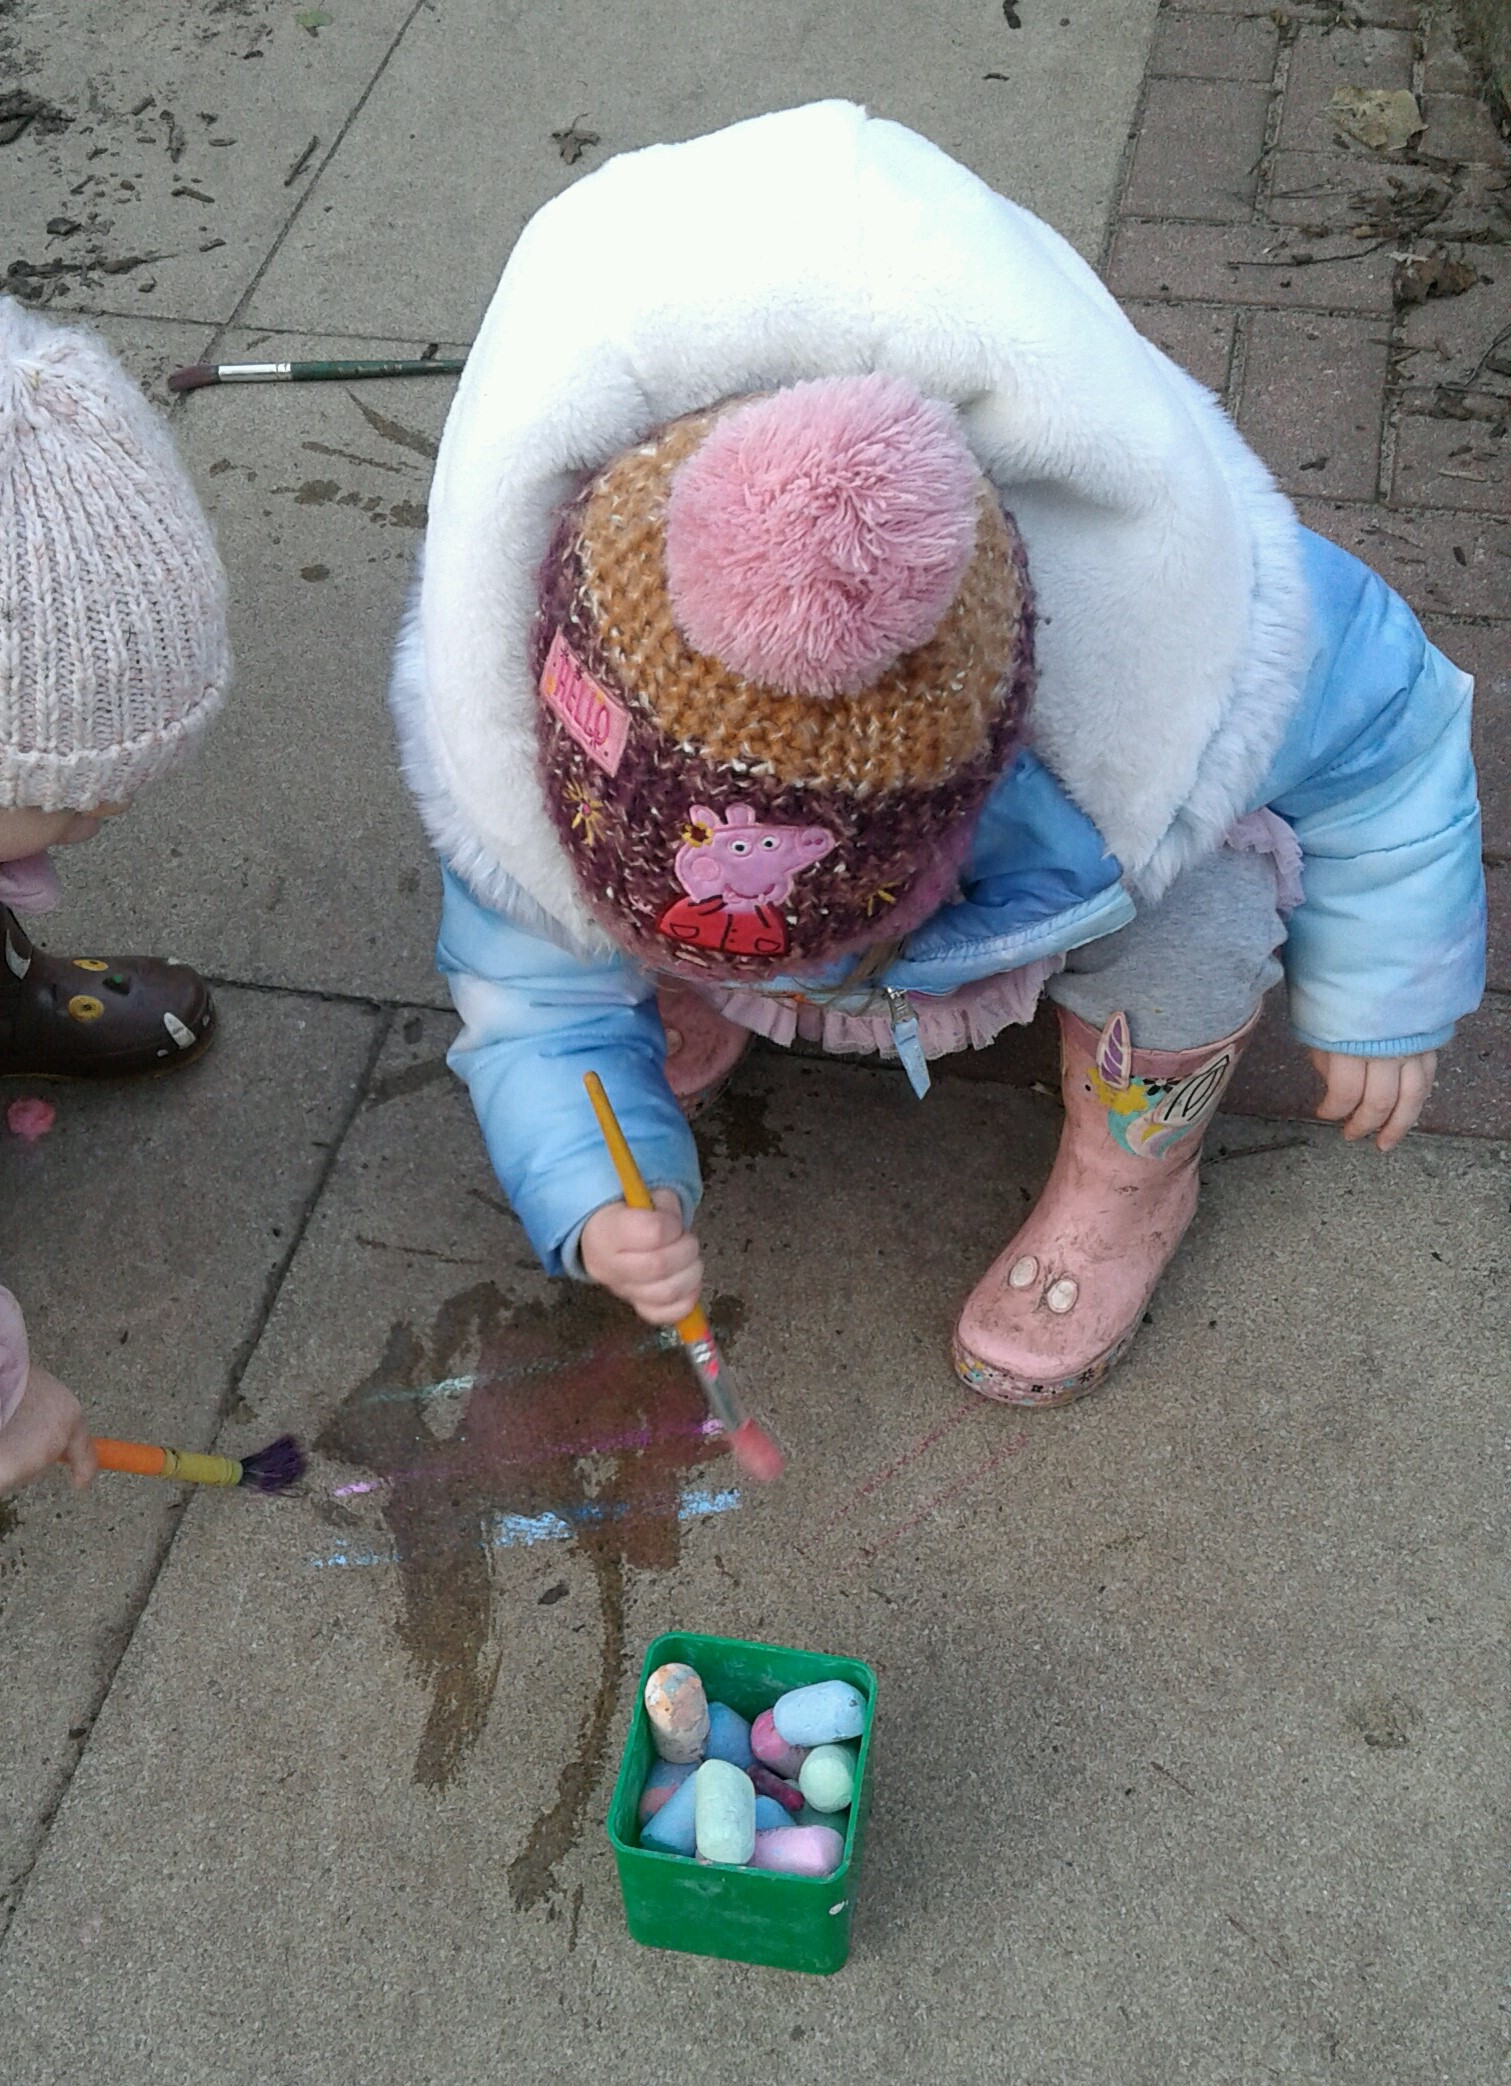 Outside in the garden the Toddlers have been exploring mark making and colour mixing using paint brushes, water and chalks.